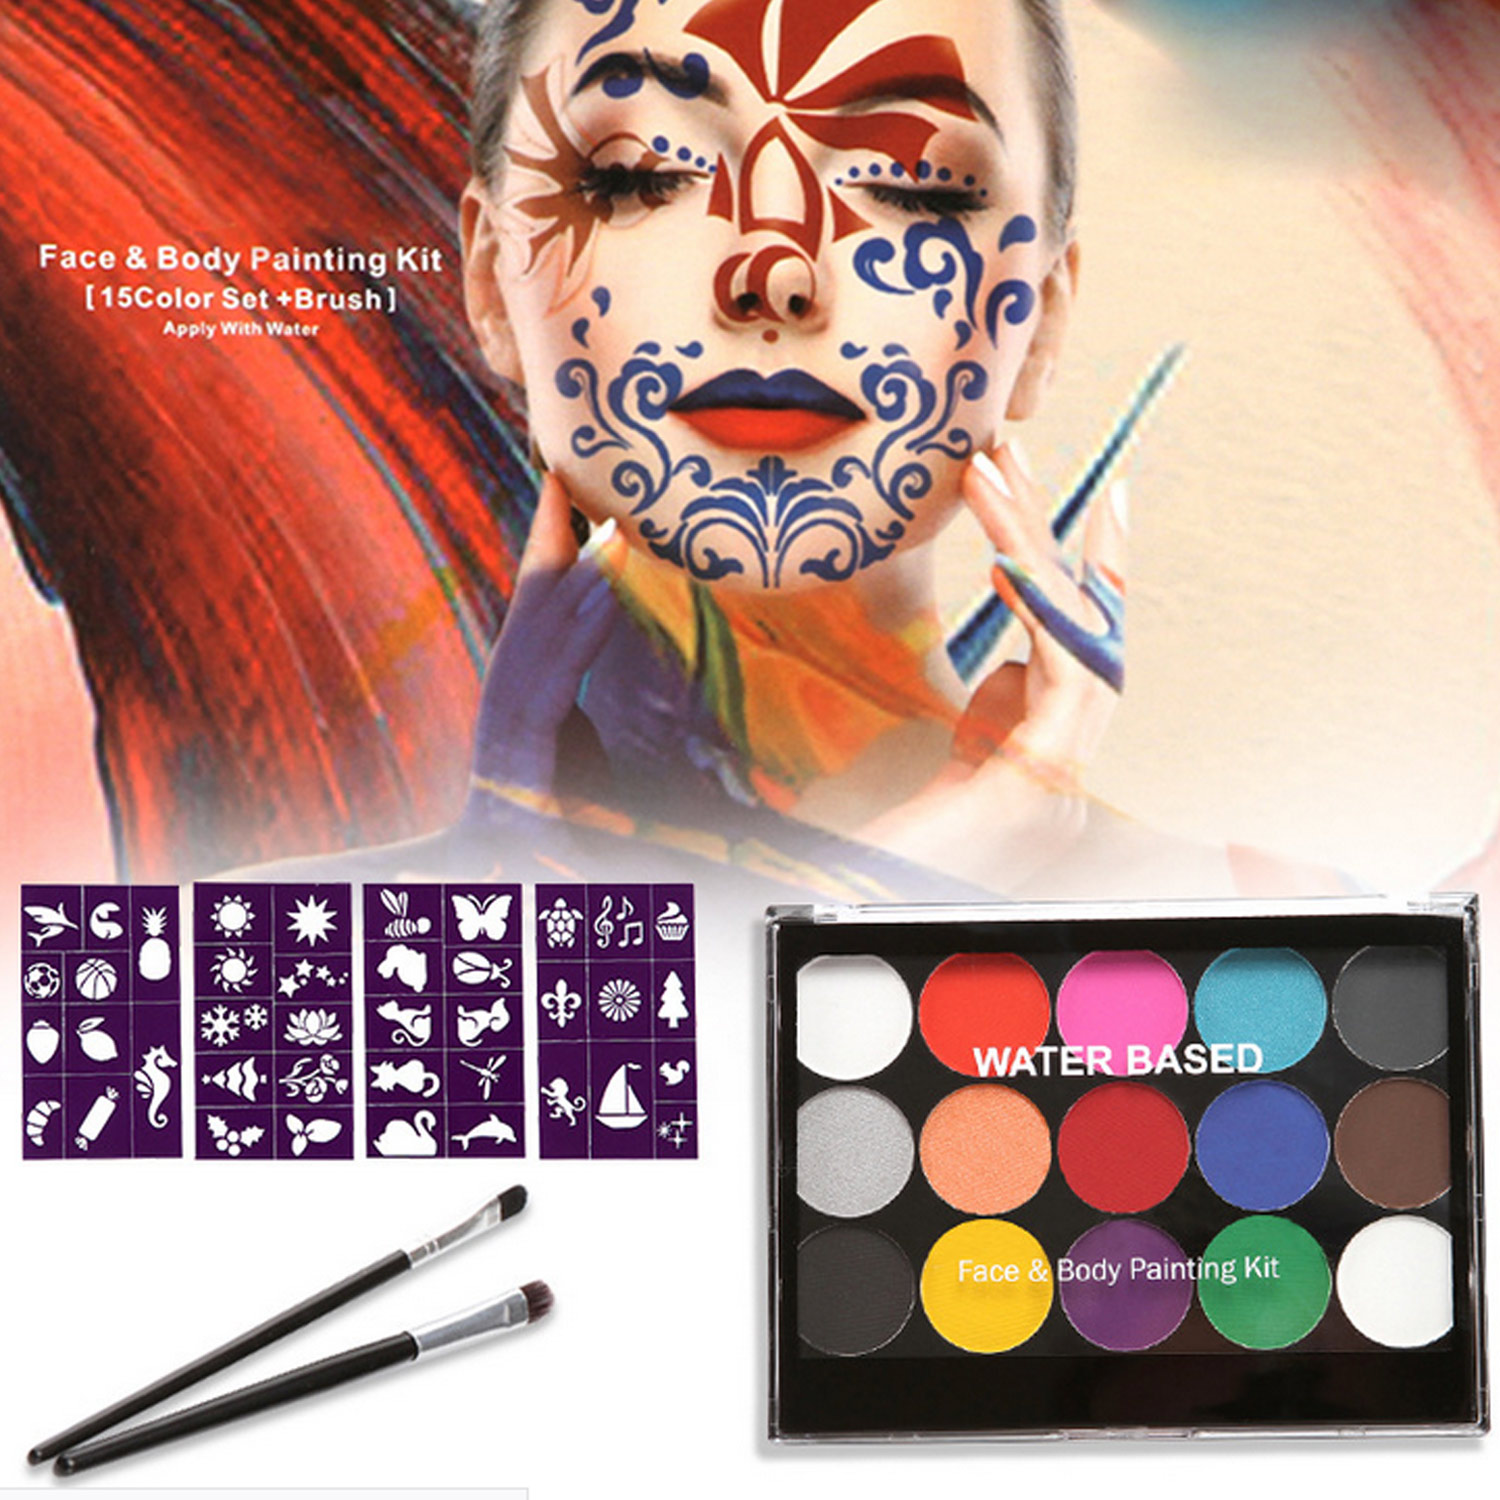 15 Color Face Painting Body Makeup Paint With 2 Painting Brush 4 Sheet Design Stencils For Cosplay Party Makeup Safe Water Paint